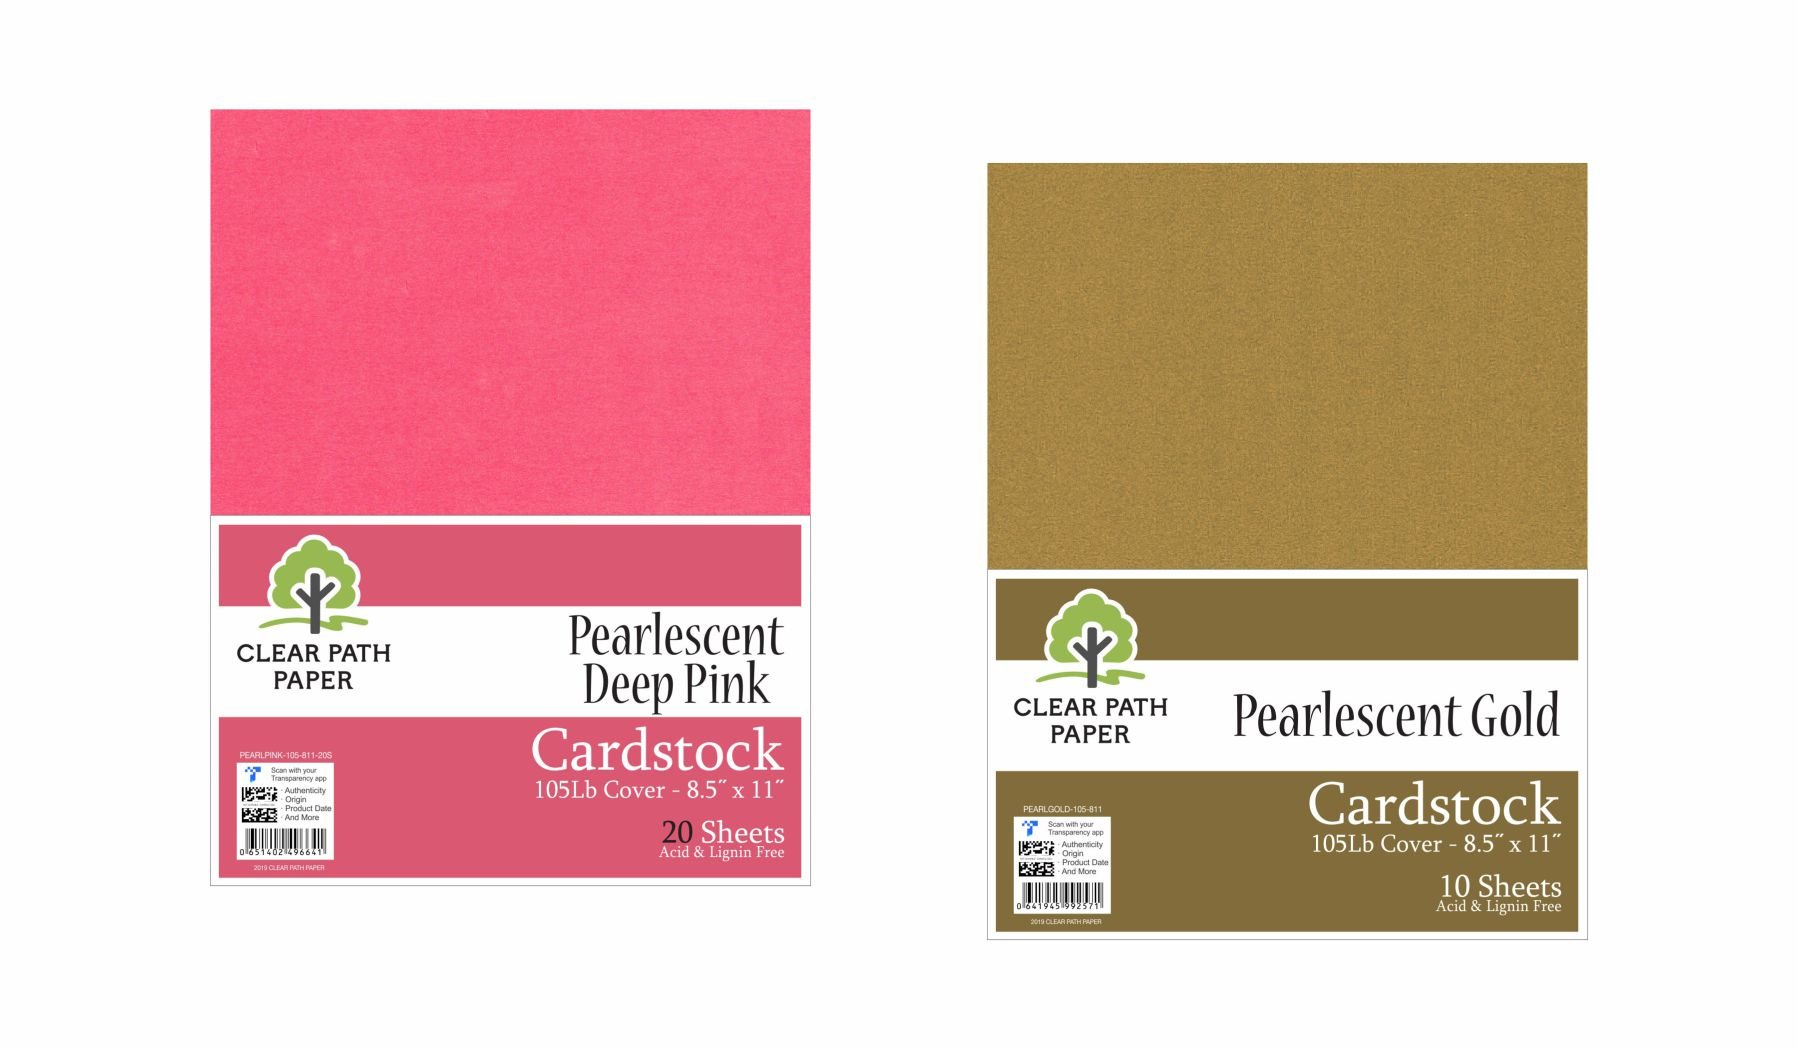 Image of an Amazon bundle of Clear Path Paper cardstock in Pearlescent Deep Pink and Pearlescent Gold